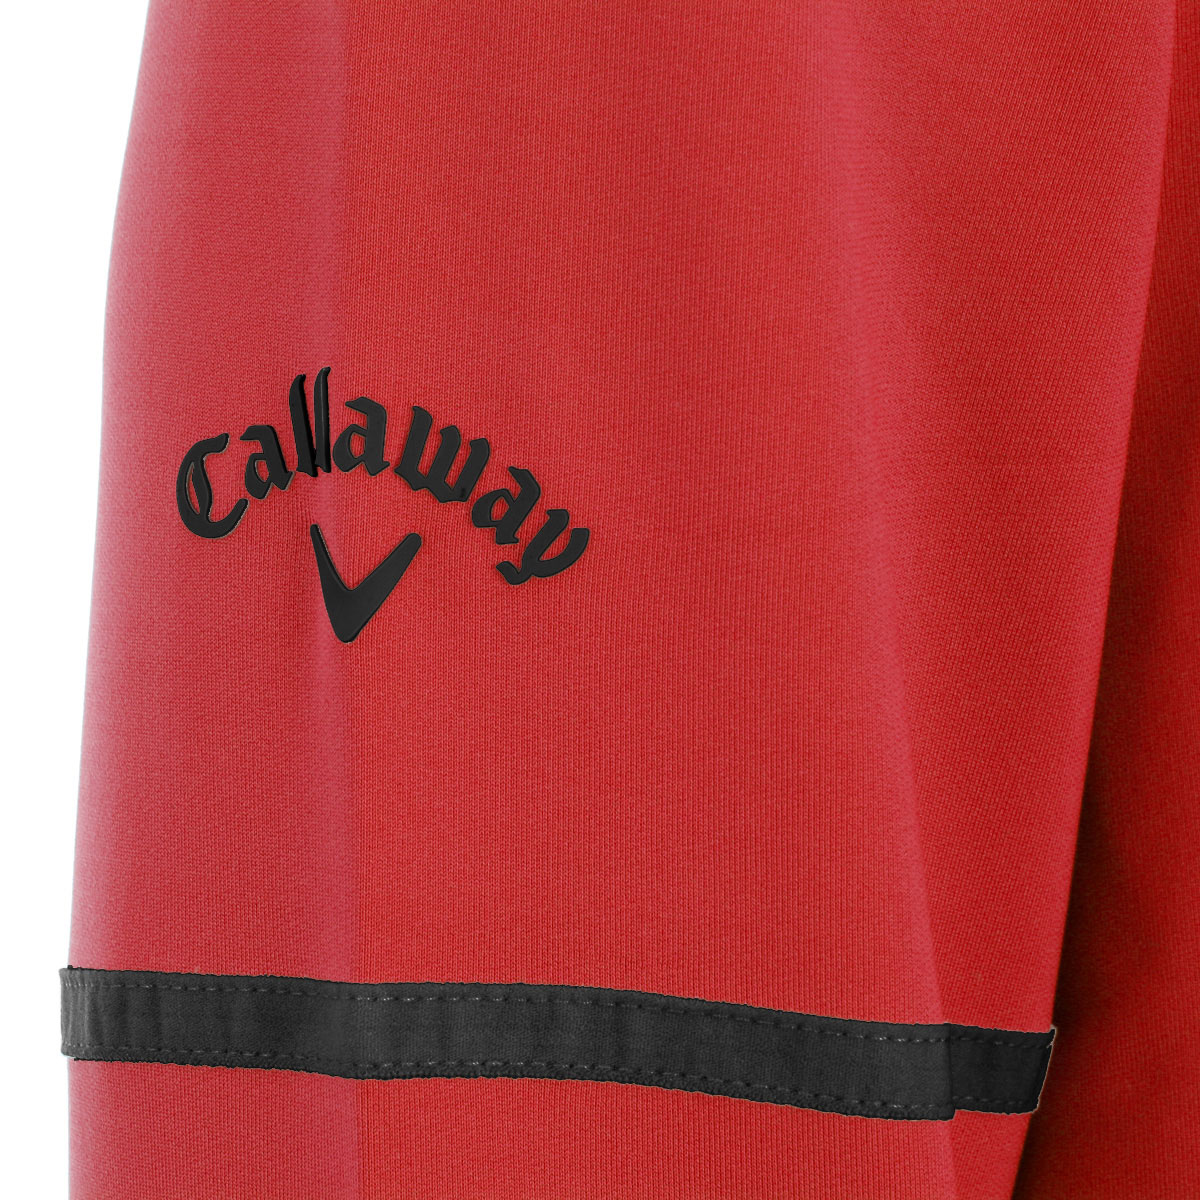 Callaway-Golf-Mens-1-4-Zip-Mid-Layer-Sweater-034-Tour-Logo-034-Pullover-Jumper thumbnail 21